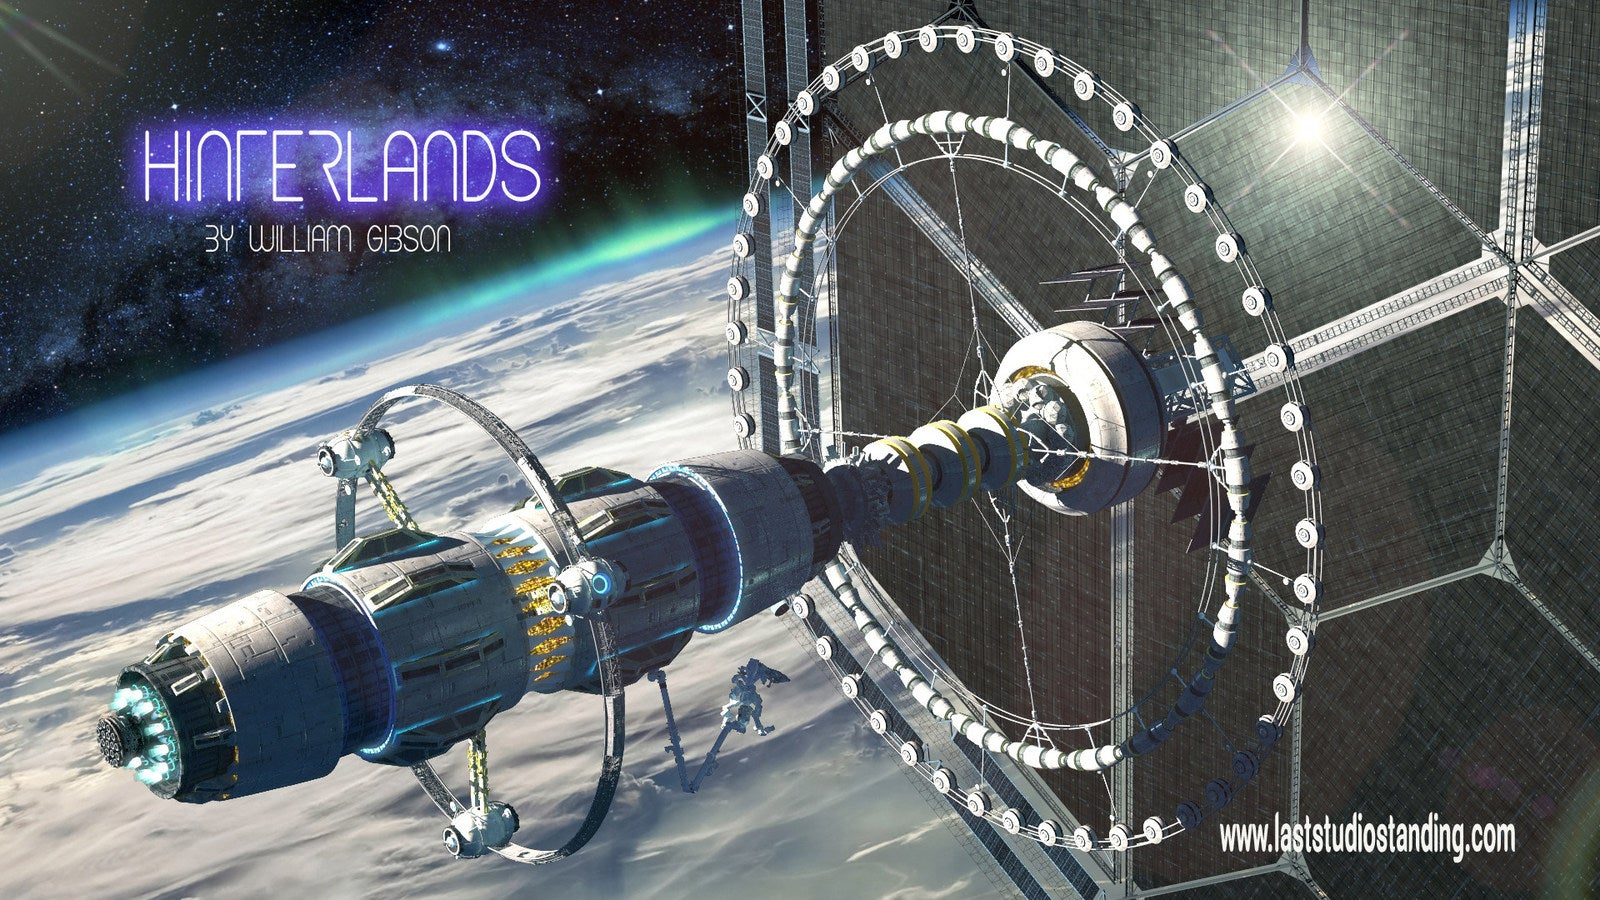 William Gibson's 'Hinterlands' Is Becoming A Multimedia Animated Franchise